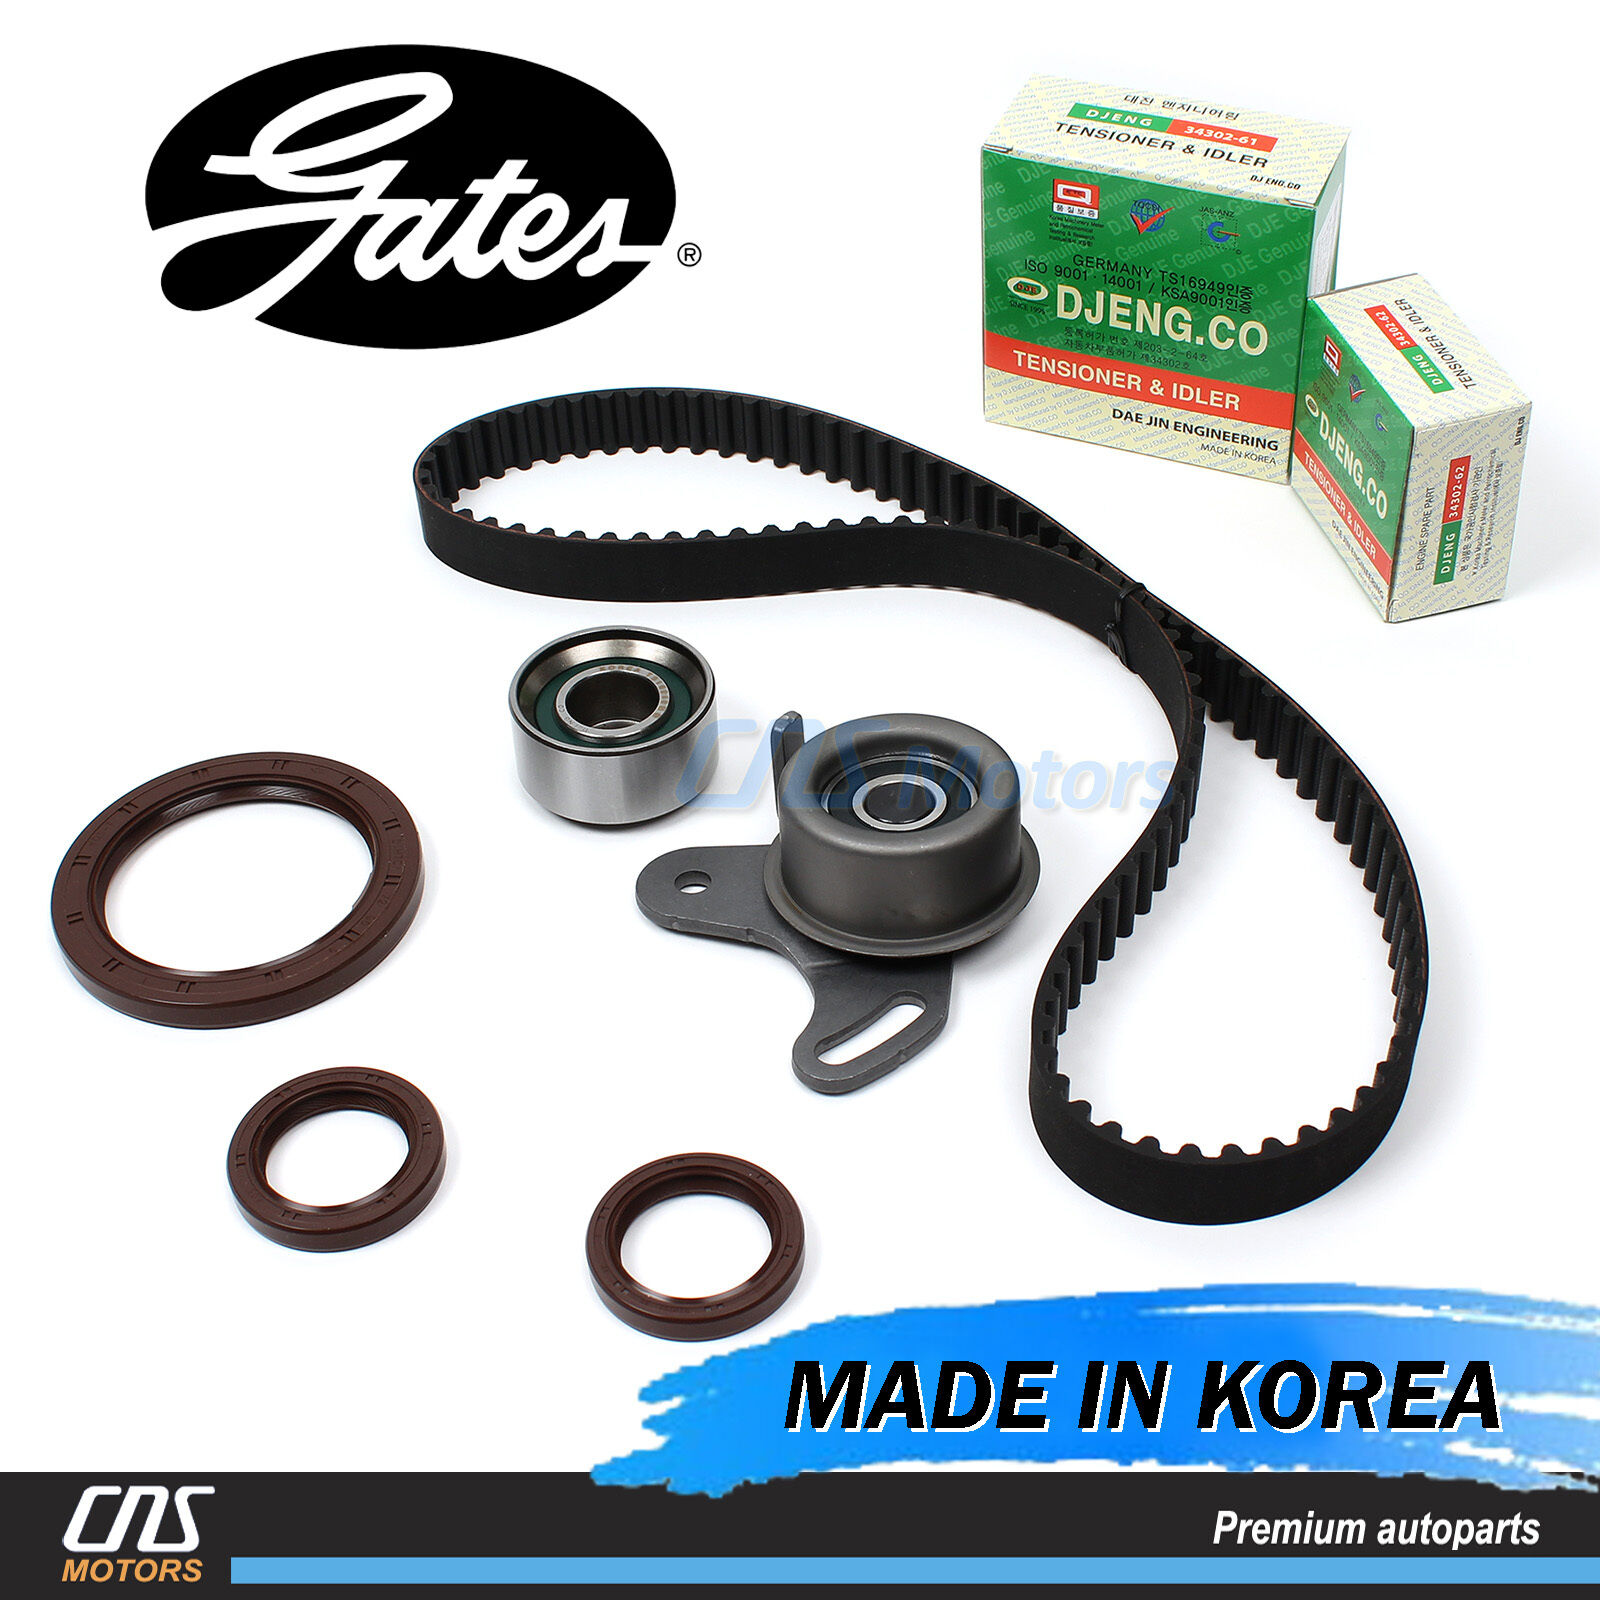 Gates Htd Timing Belt Kit Tensioner Fits 1996 2011 Hyundai Accent Kia Rio Cover 1 Of 2free Shipping